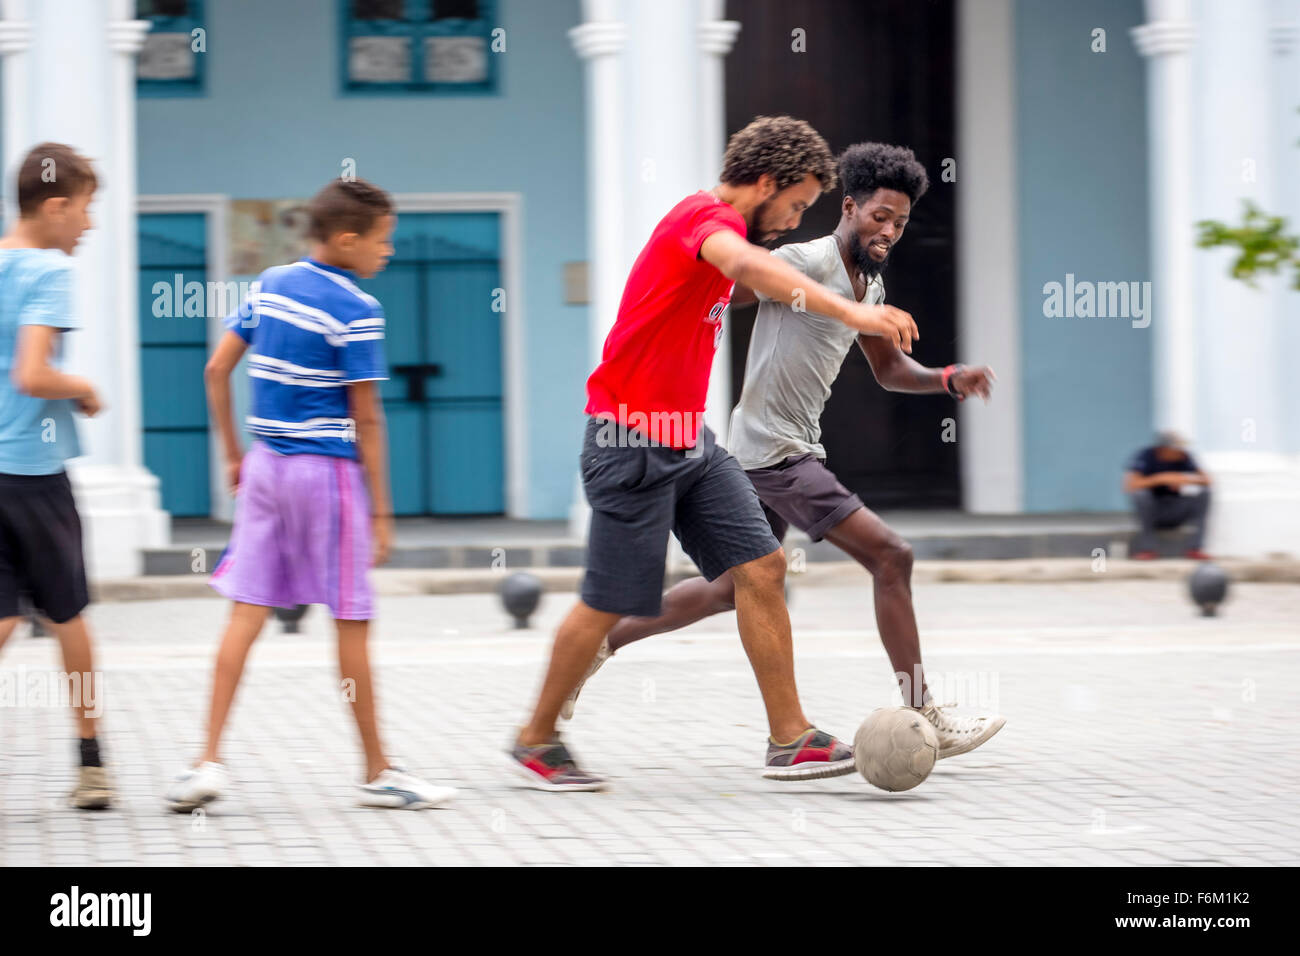 Cuban youths playing football in the town square, movement, in a marketplace, Street Scene, La Habana, Cuba, Caribbean - Stock Image